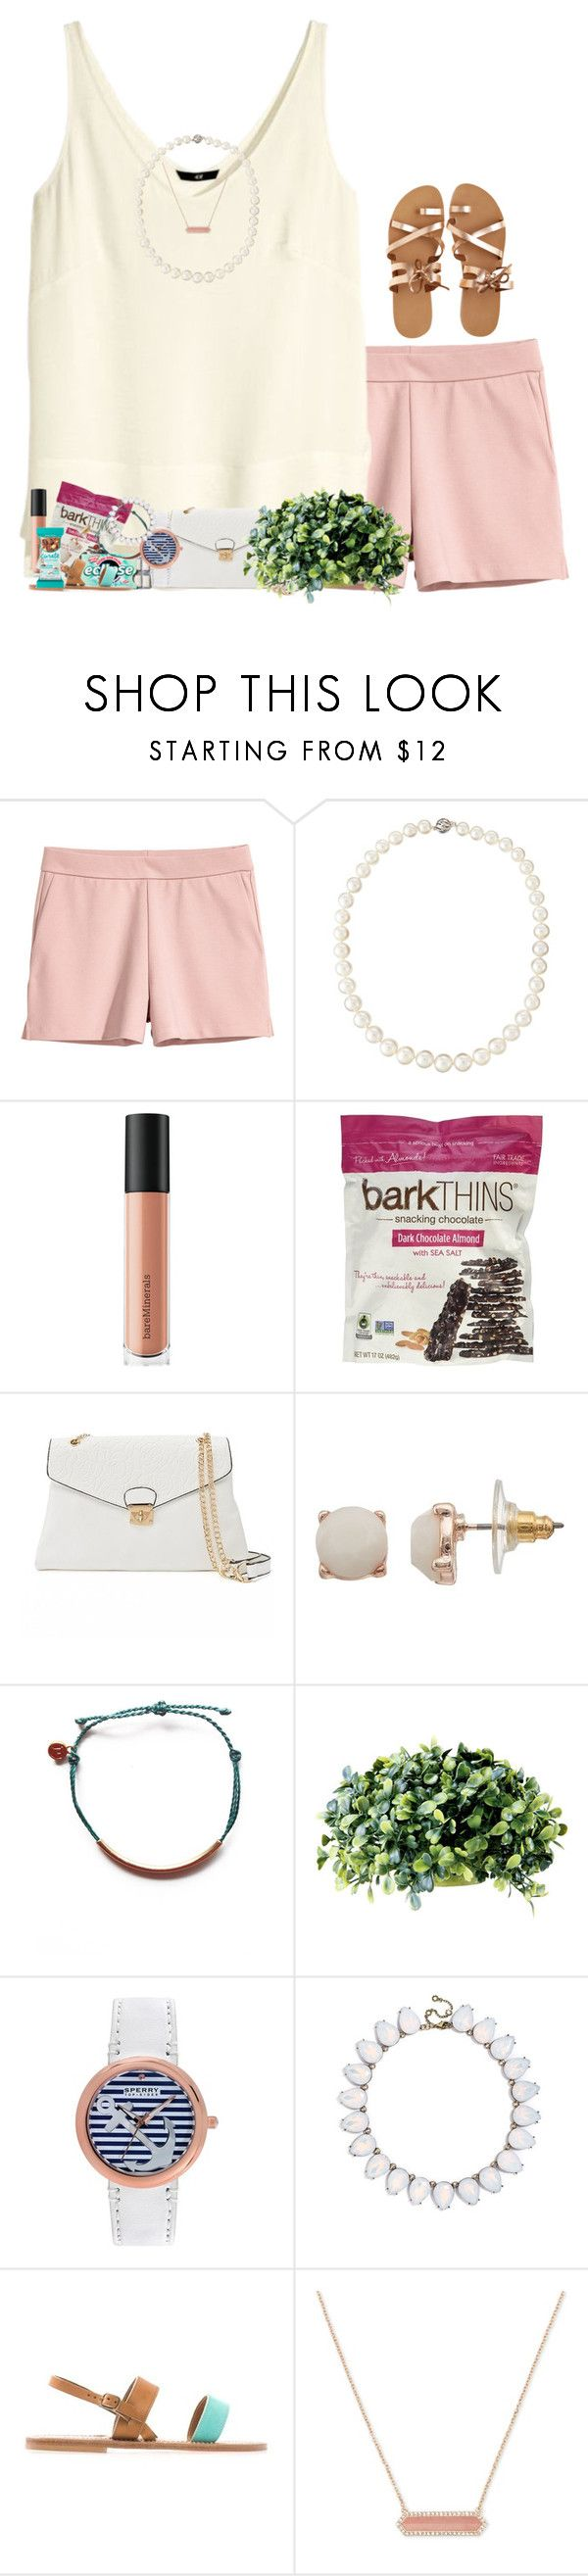 """""""standing as the oceans roar"""" by livnewell ❤ liked on Polyvore featuring H&M, Belpearl, Bare Escentuals, Mellow World, LC Lauren Conrad, Pura Vida, Barreveld, Sperry, BaubleBar and K. Jacques"""